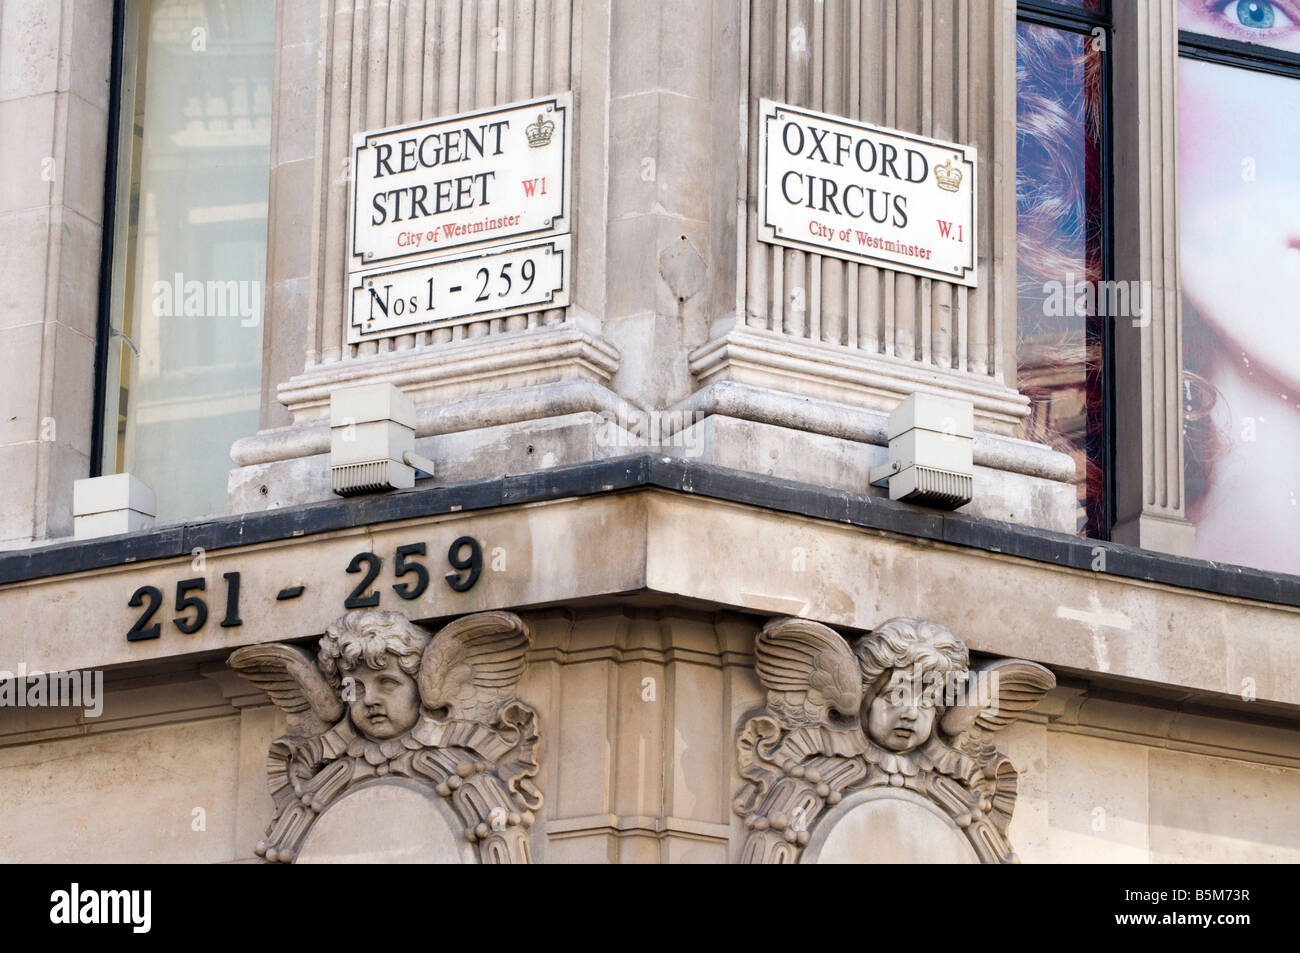 Street signs at corner of Regent Street and Oxford Circus, London England UK - Stock Image